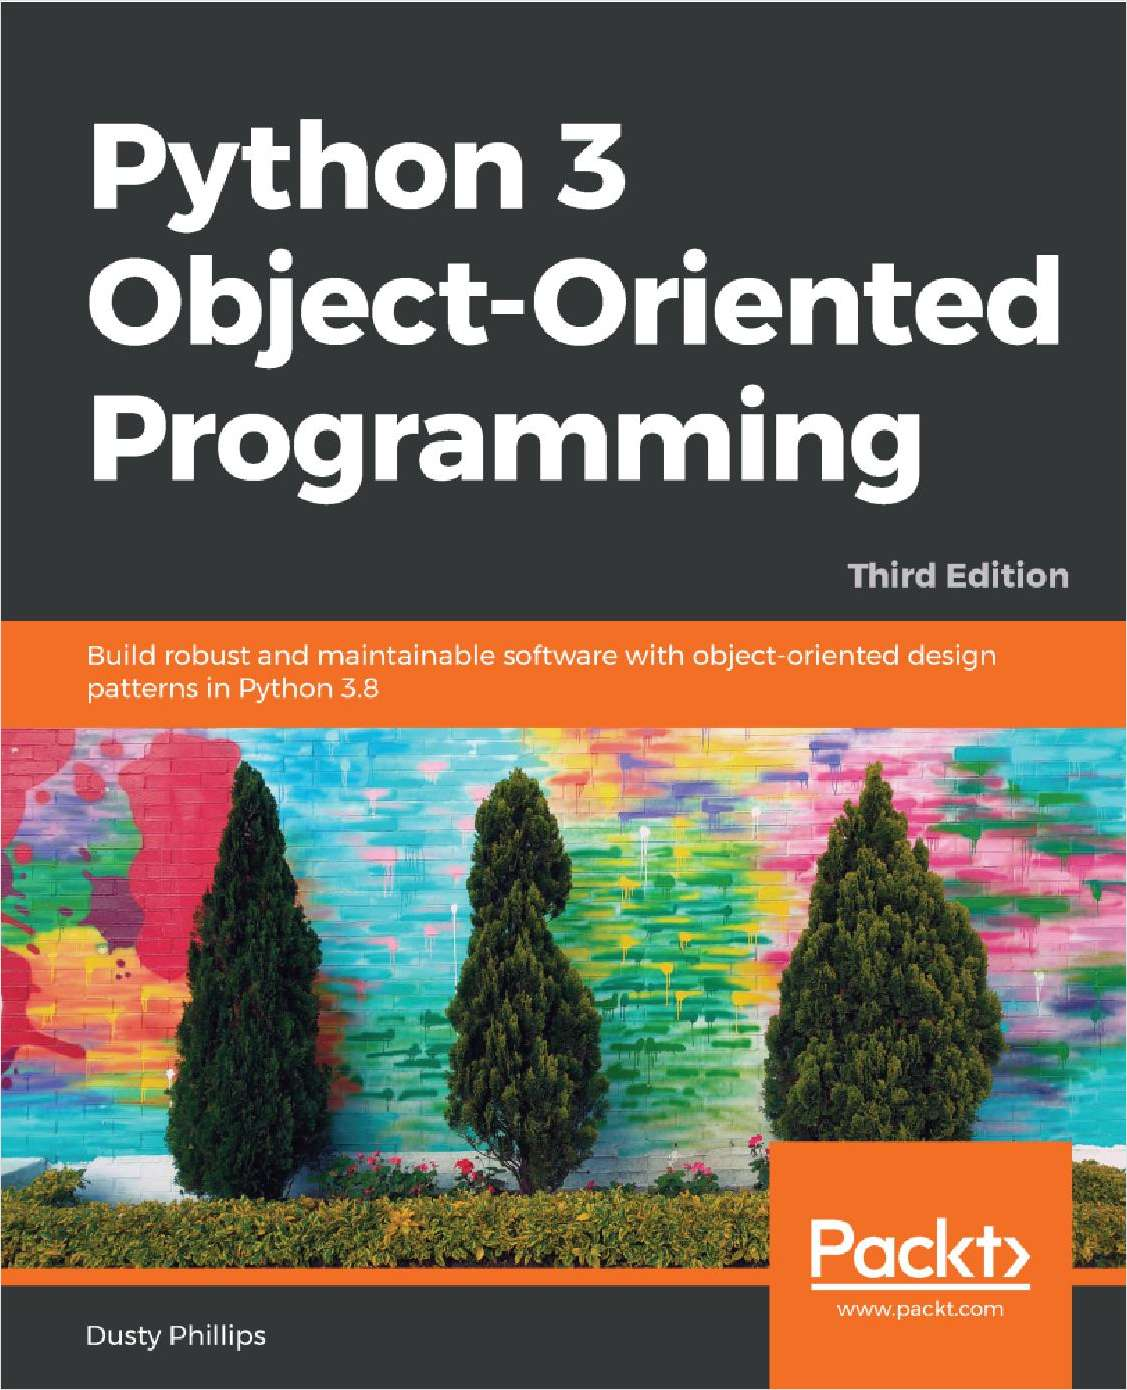 Python 3 Object-Oriented Programming - Free Sample Chapter